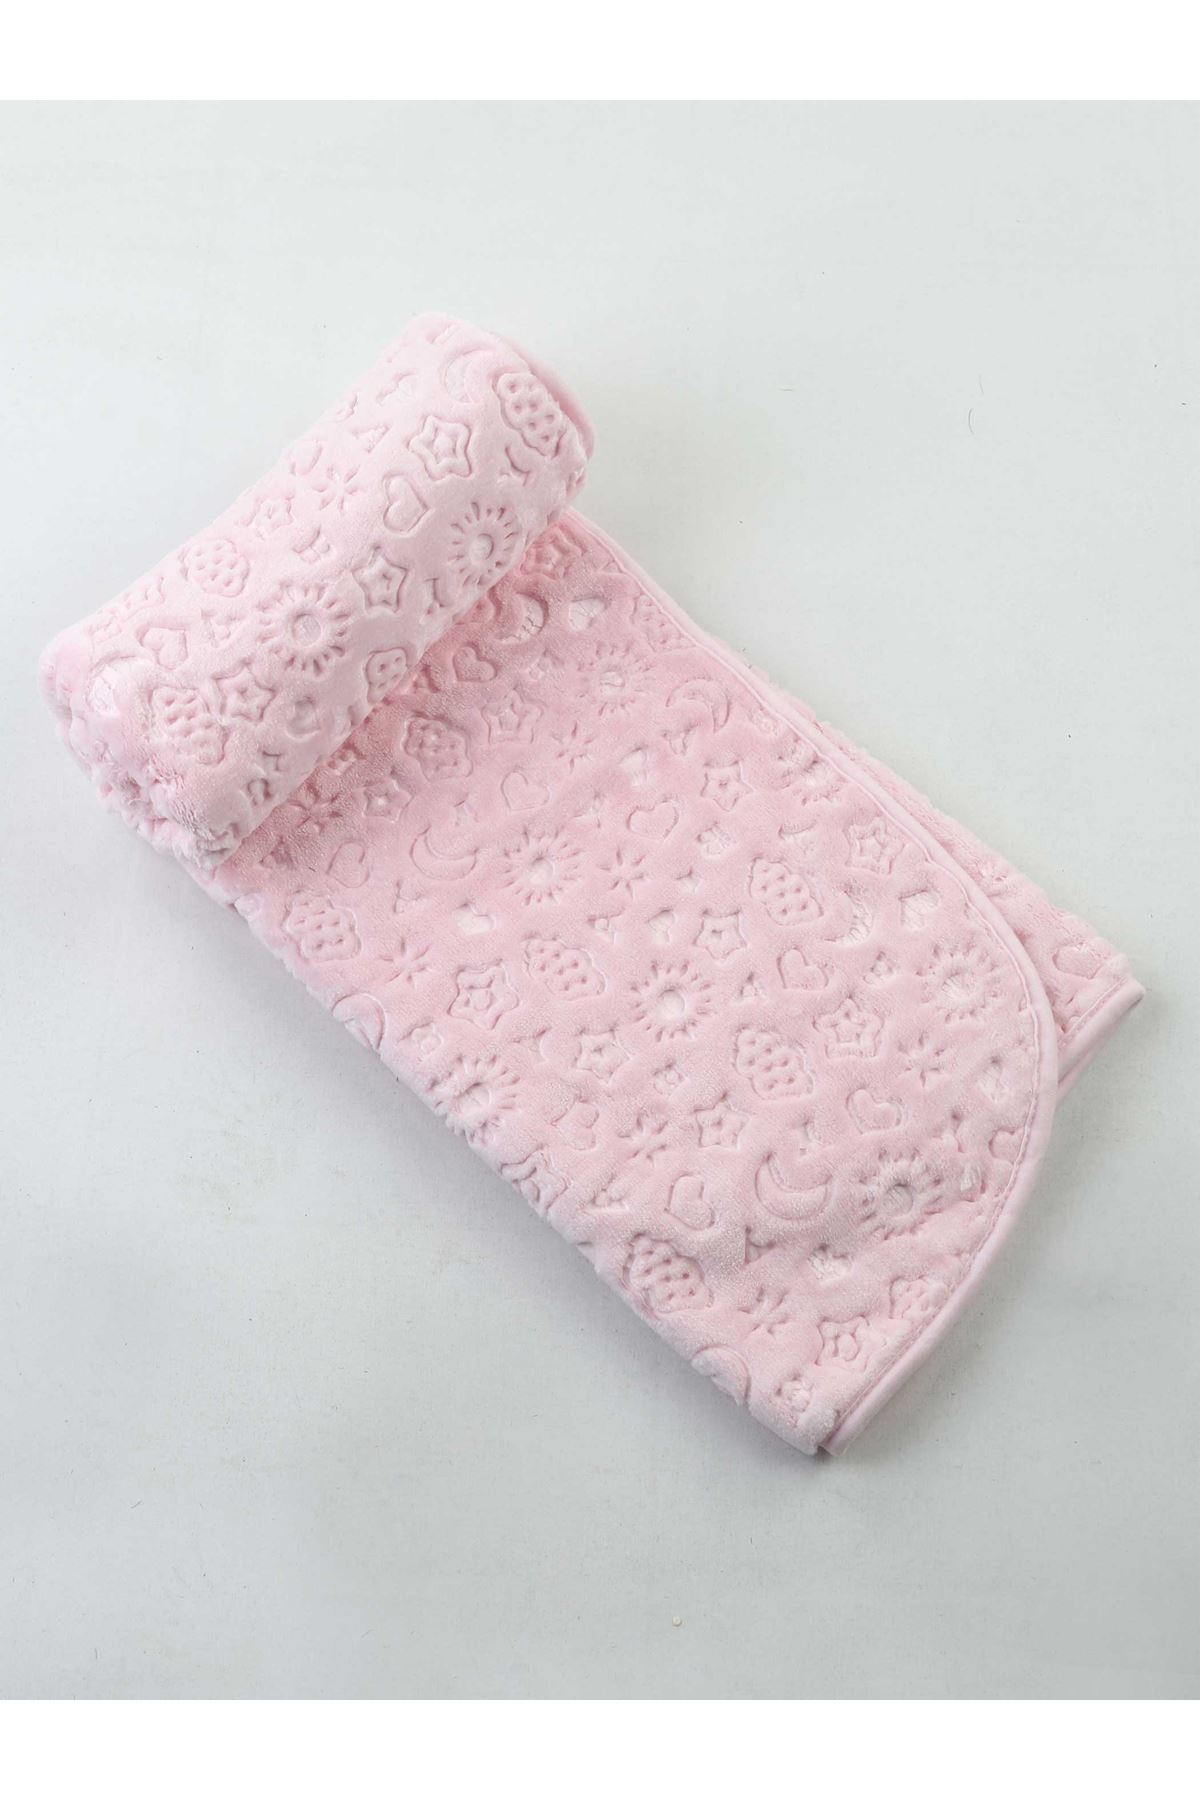 Baby Girl Boy Soft Blanket Fleece Surface Infants Swaddle Blanket Cotton 120x100cm Relief Beautiful Plush Surface Warm Protected